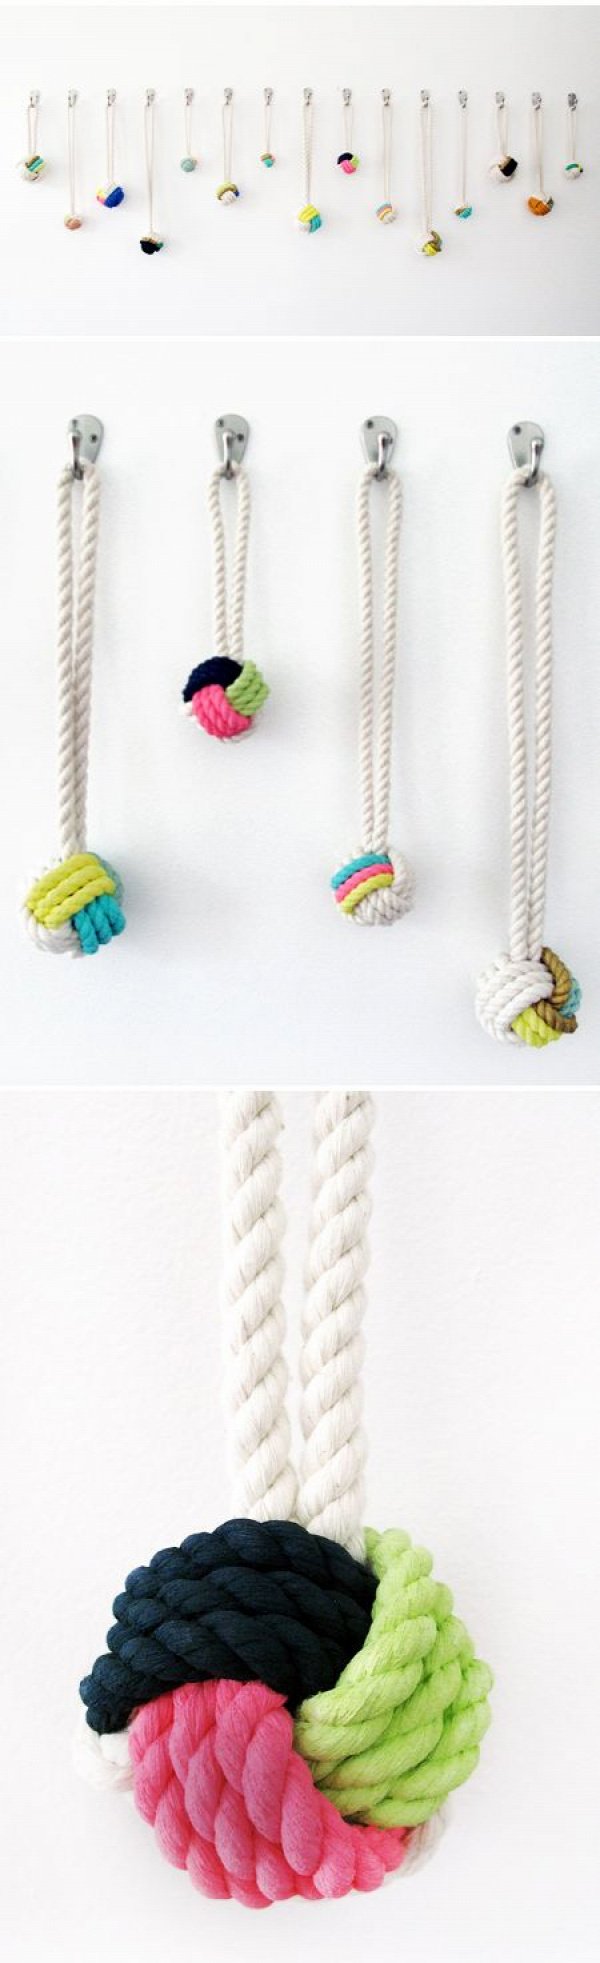 .Rope Ball Necklace